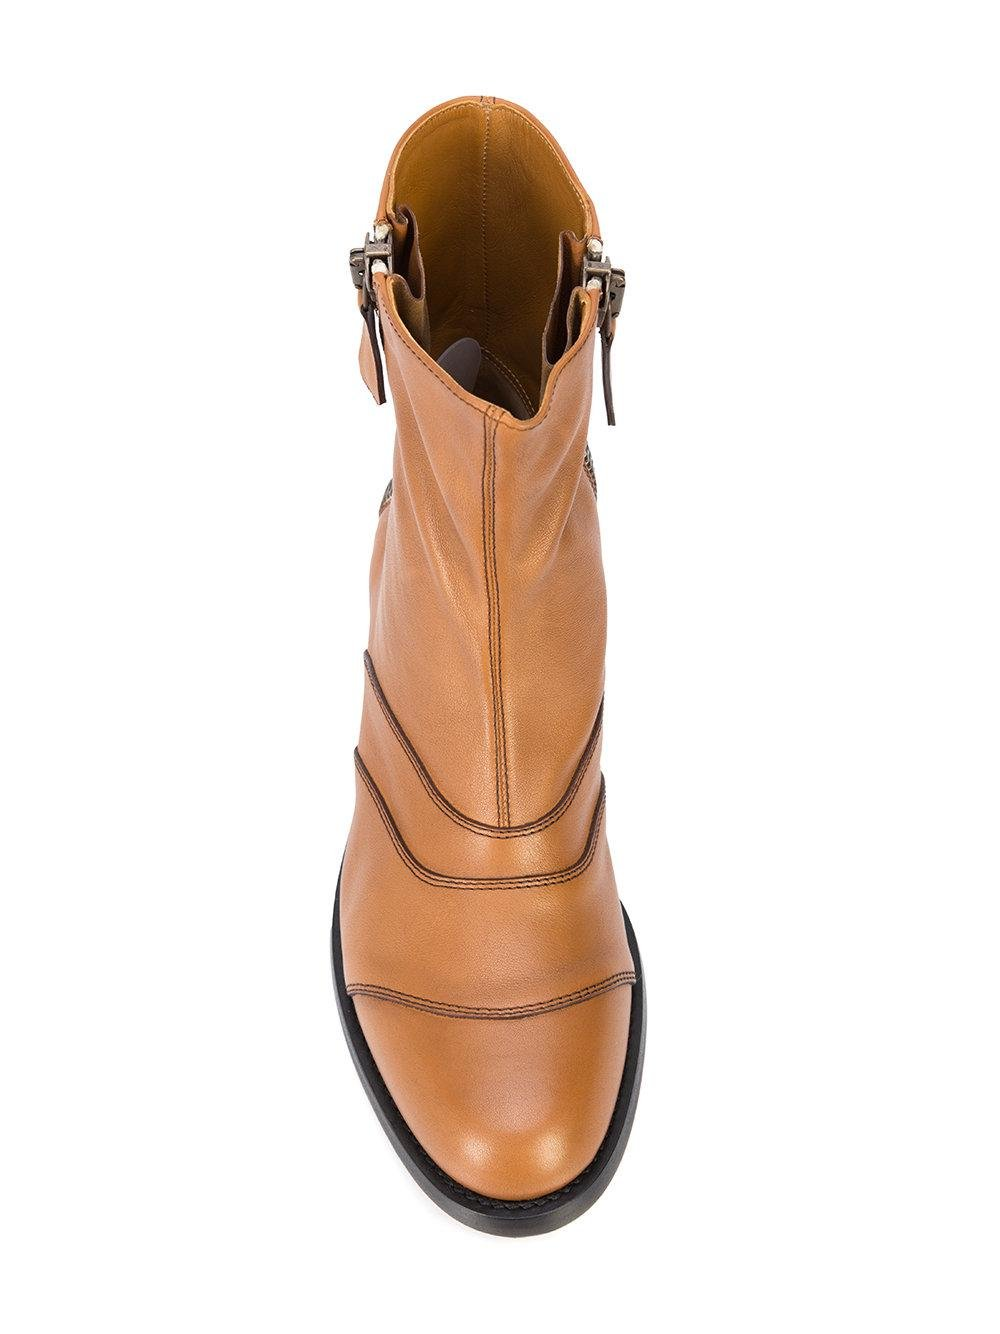 Chloé Leather Lexi Boots in Brown